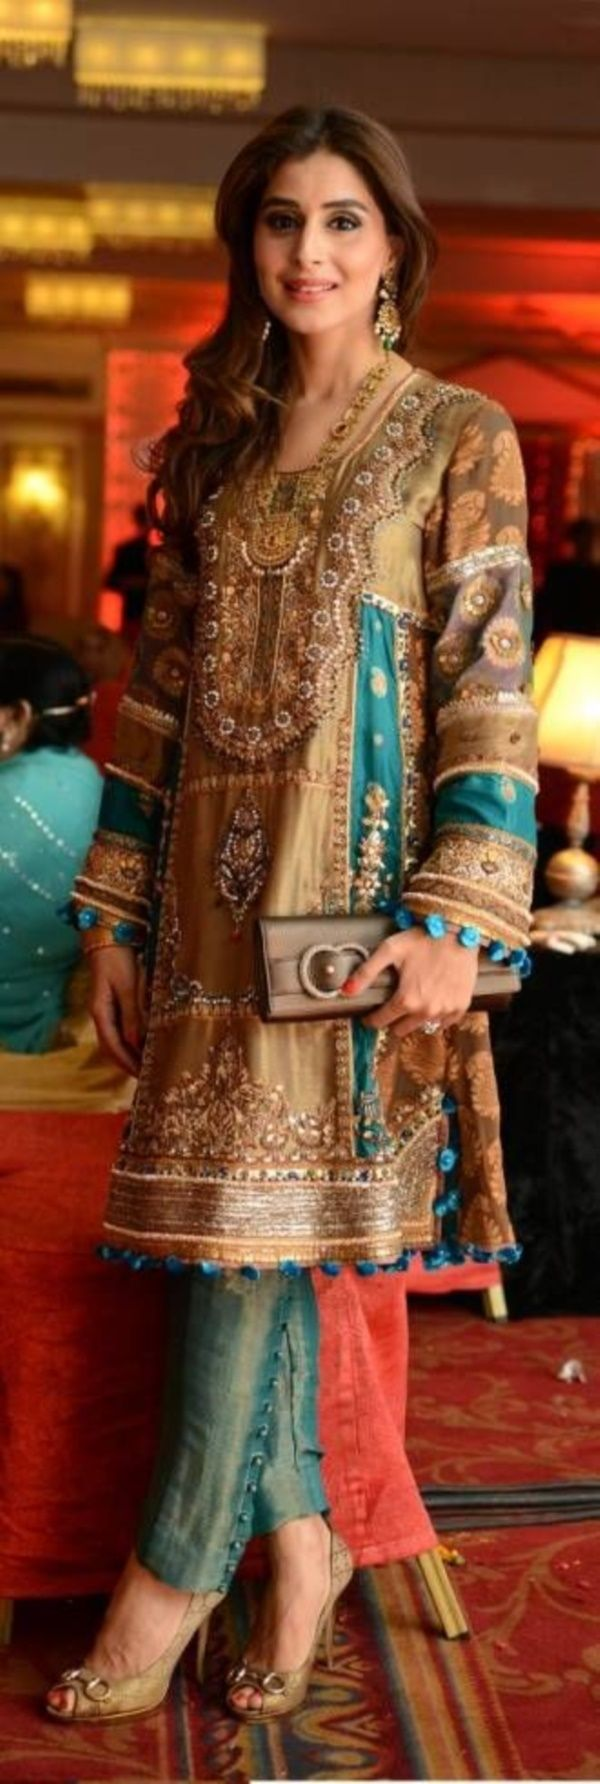 Colorful Indian Fashion Trends to Follow in 20160231